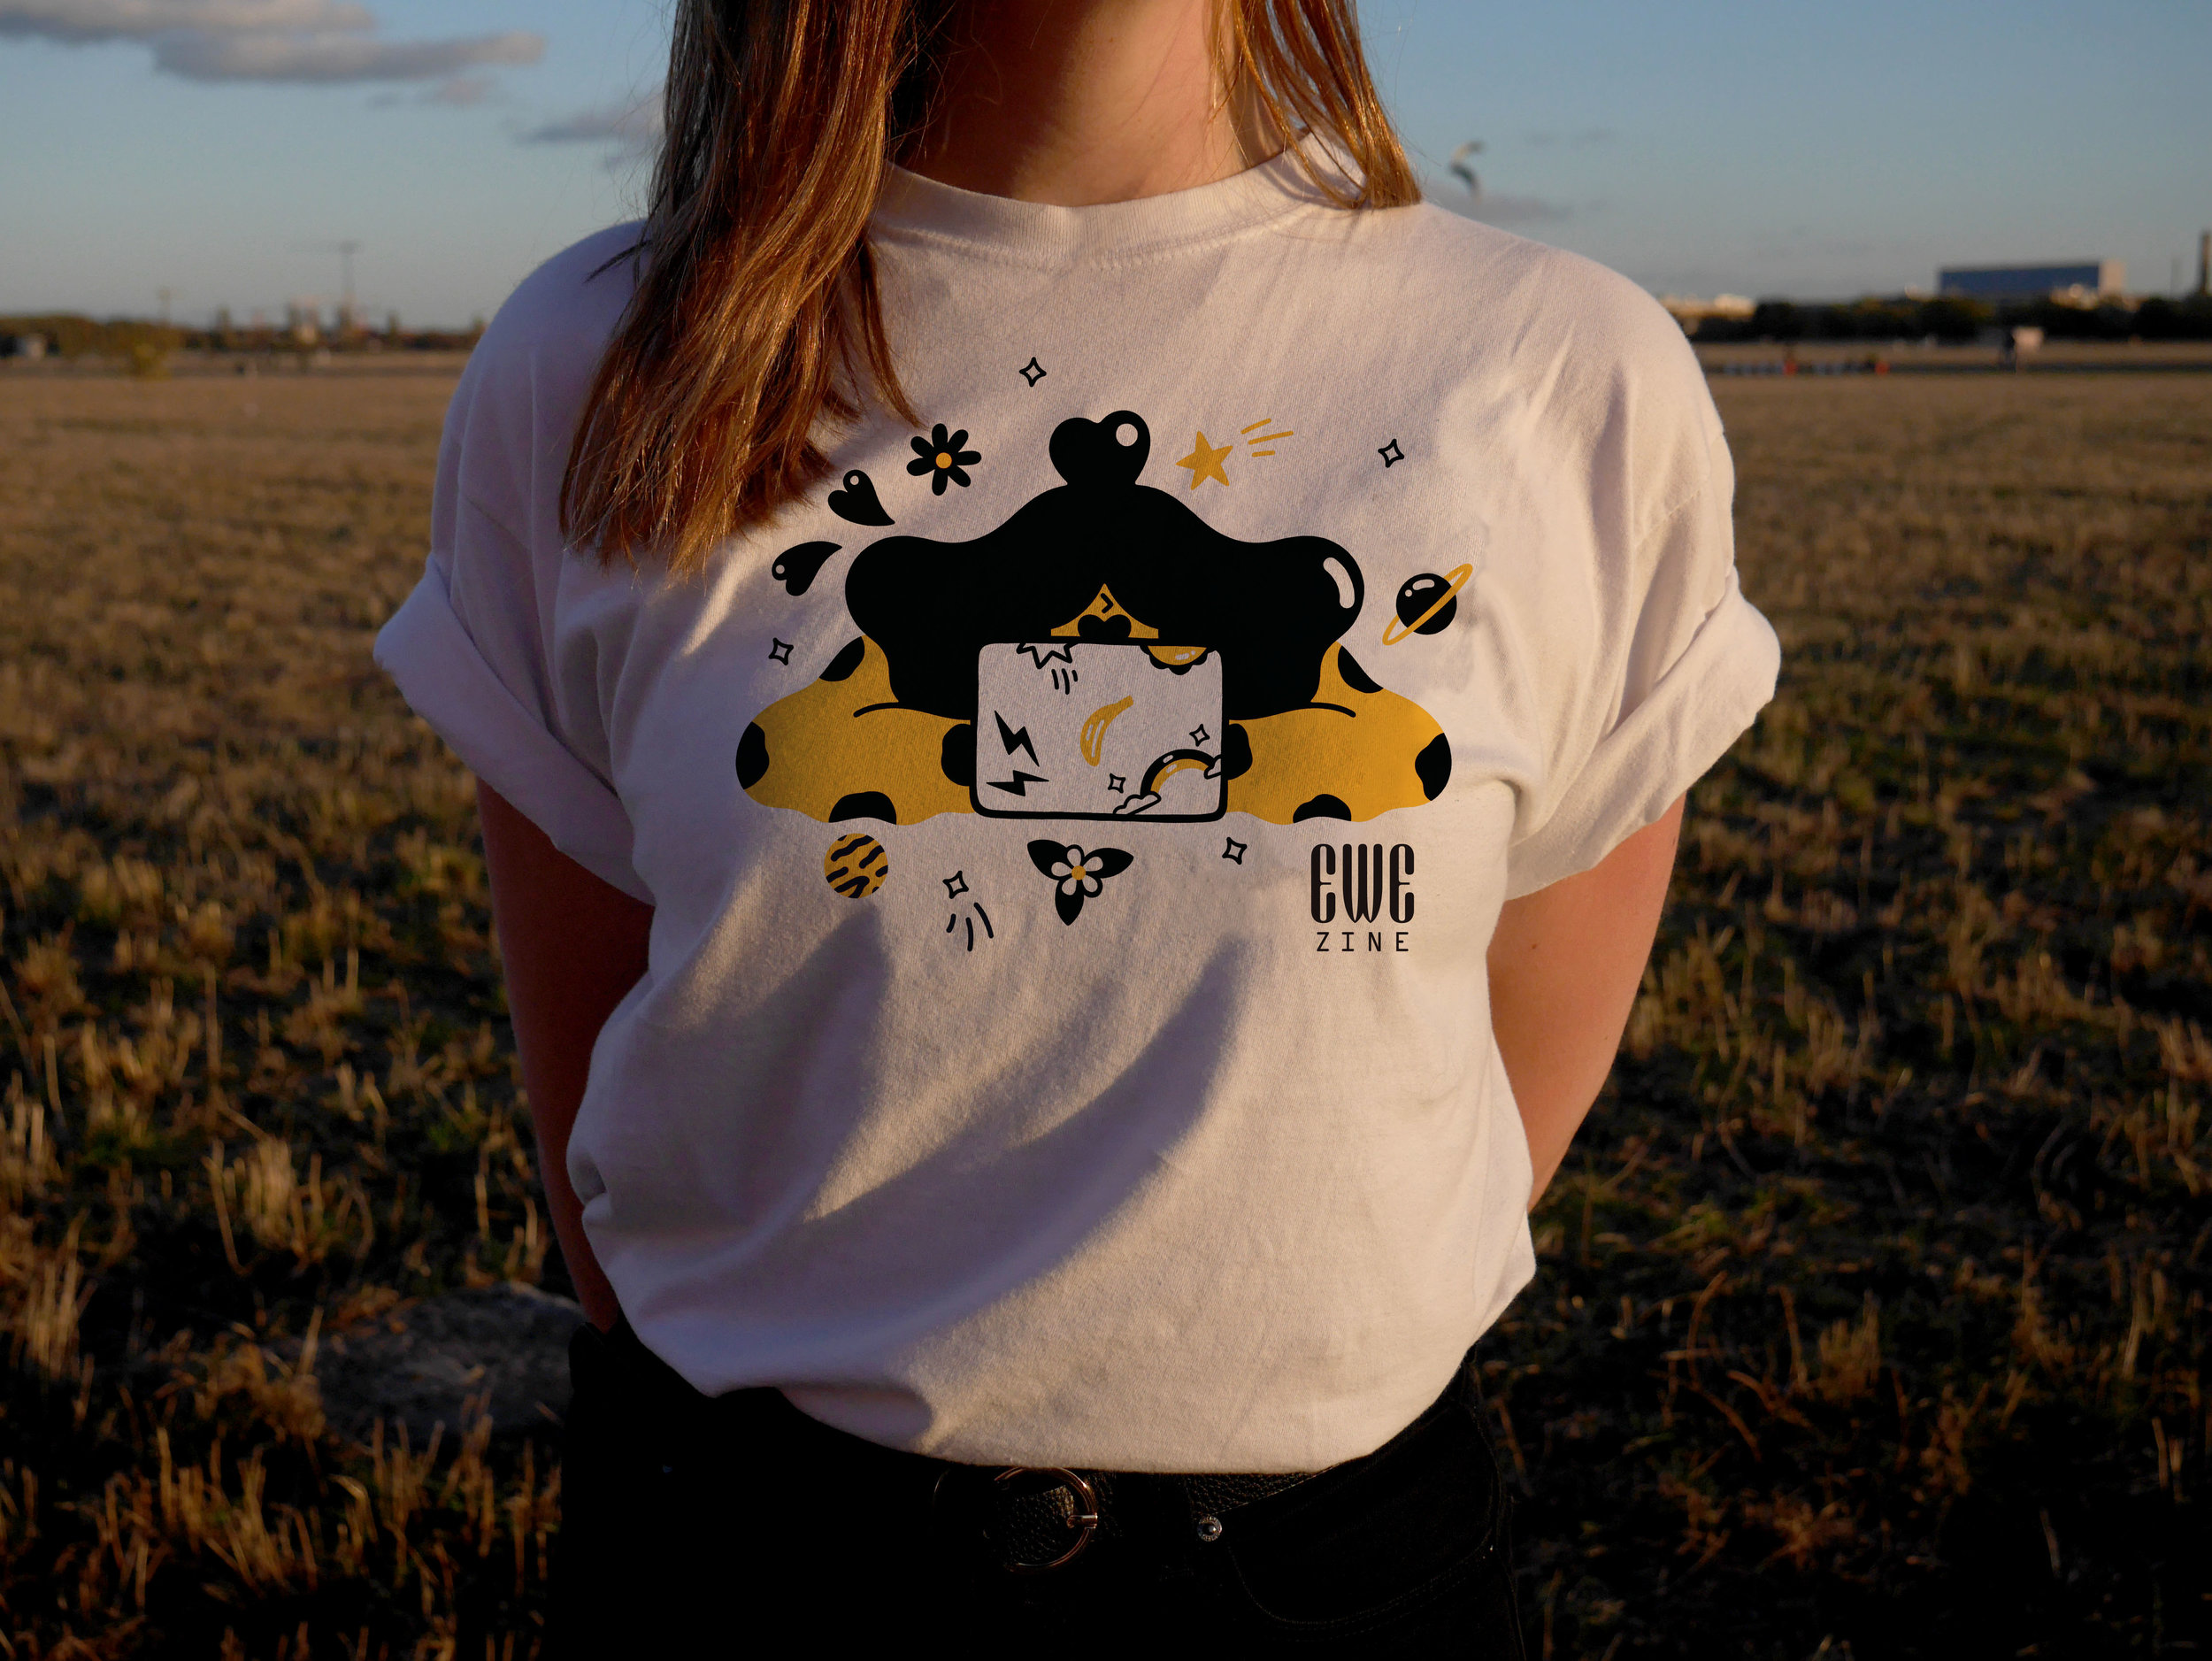 EWE_Issue2_Tshirtsivisual_001.jpg